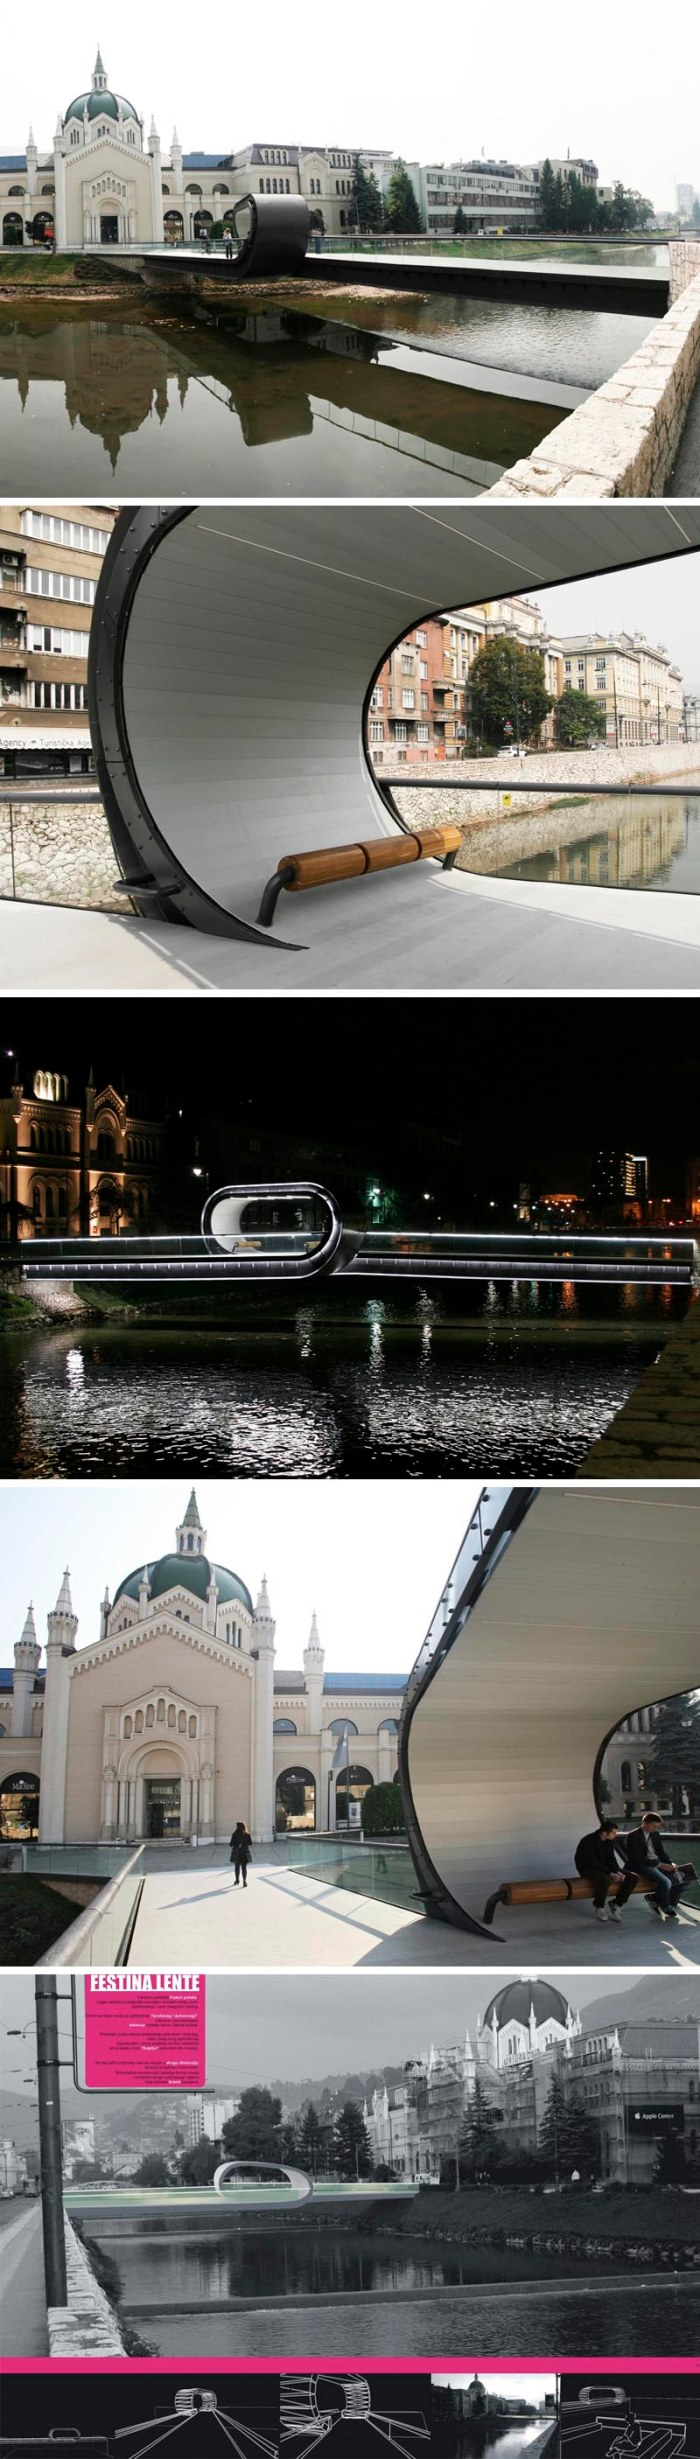 Looping bridge at the Academy of Fine Arts in Sarajevo, Bosnia, Competition prize by three industrial (product) designers Adnan Alagic, Bojan Kanlic and Amila Hrustic, cool pedestrian bridge design